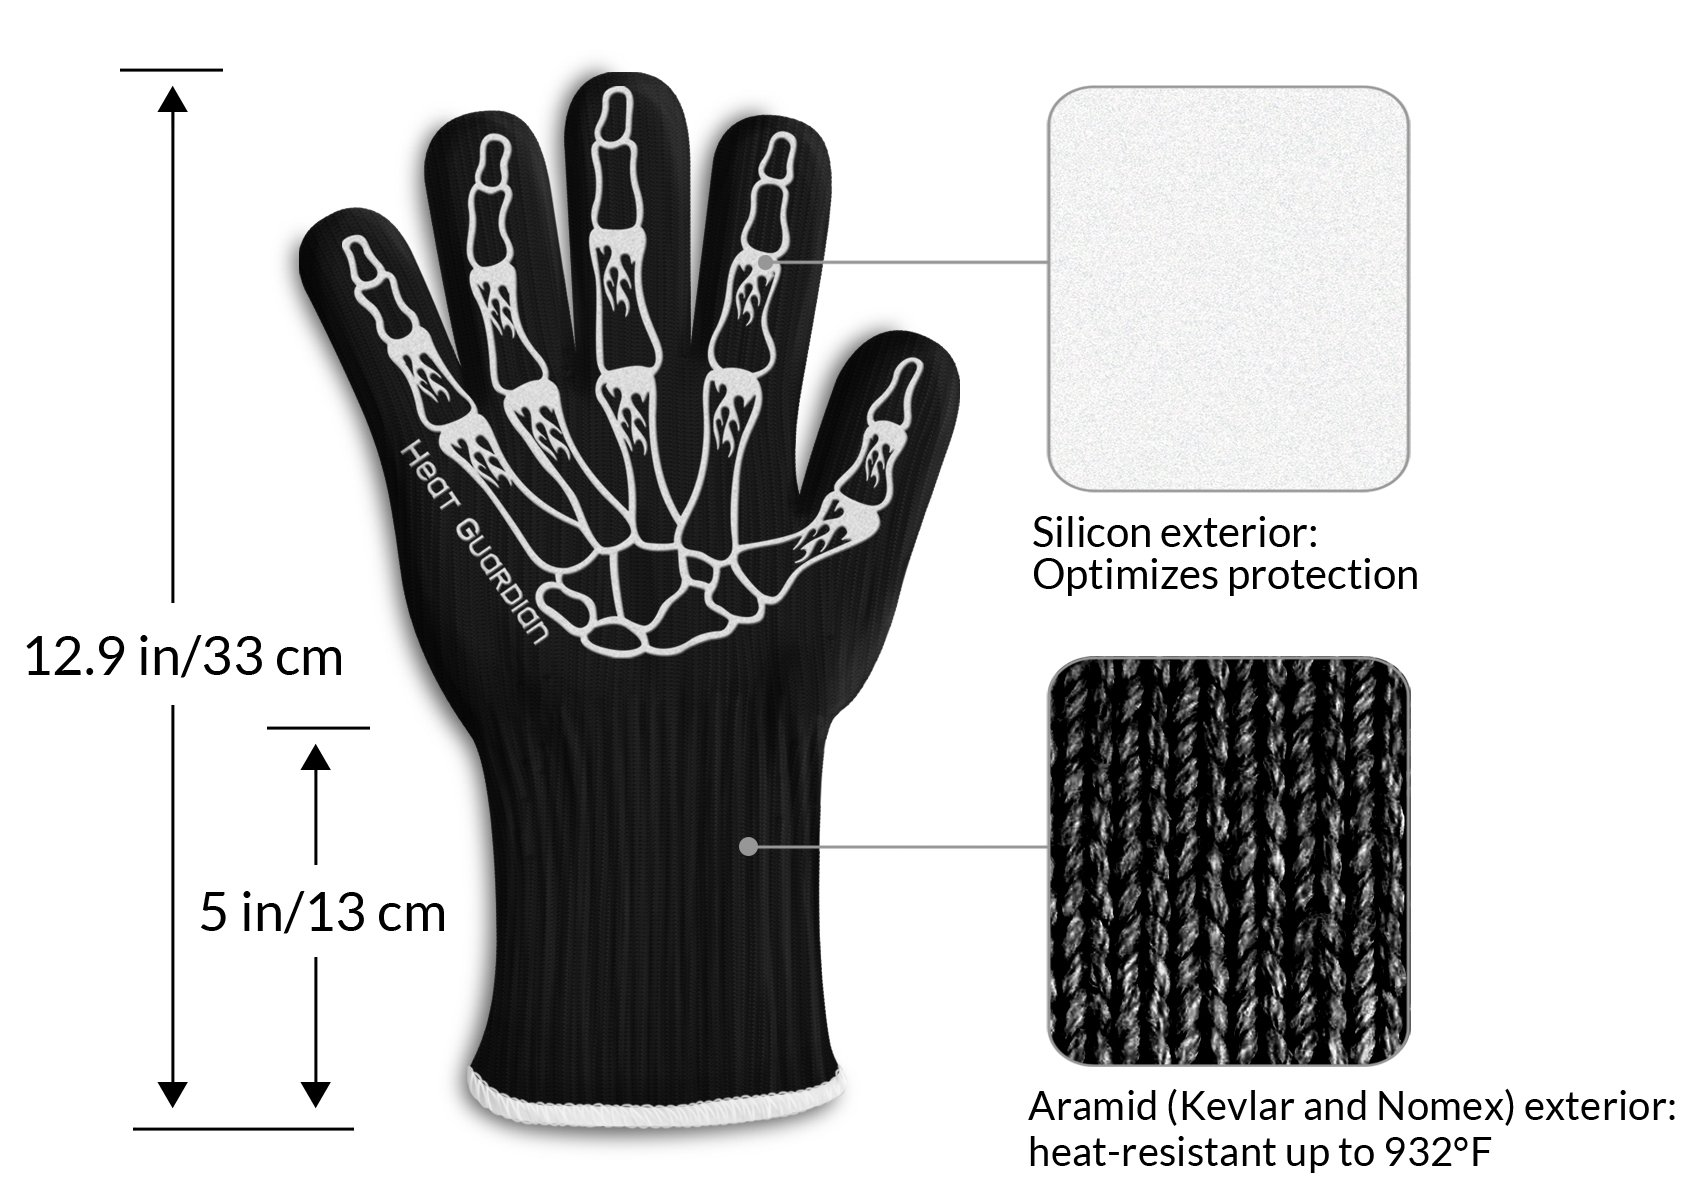 """Heat Guardian Heat Resistant Gloves – Protective Gloves Withstand Heat Up To 932℉ – Use As Oven Mitts, Pot Holders, Heat Resistant Gloves for Grilling – Features 5"""" Cuff for Forearm Protection by Heat Guardian (Image #4)"""